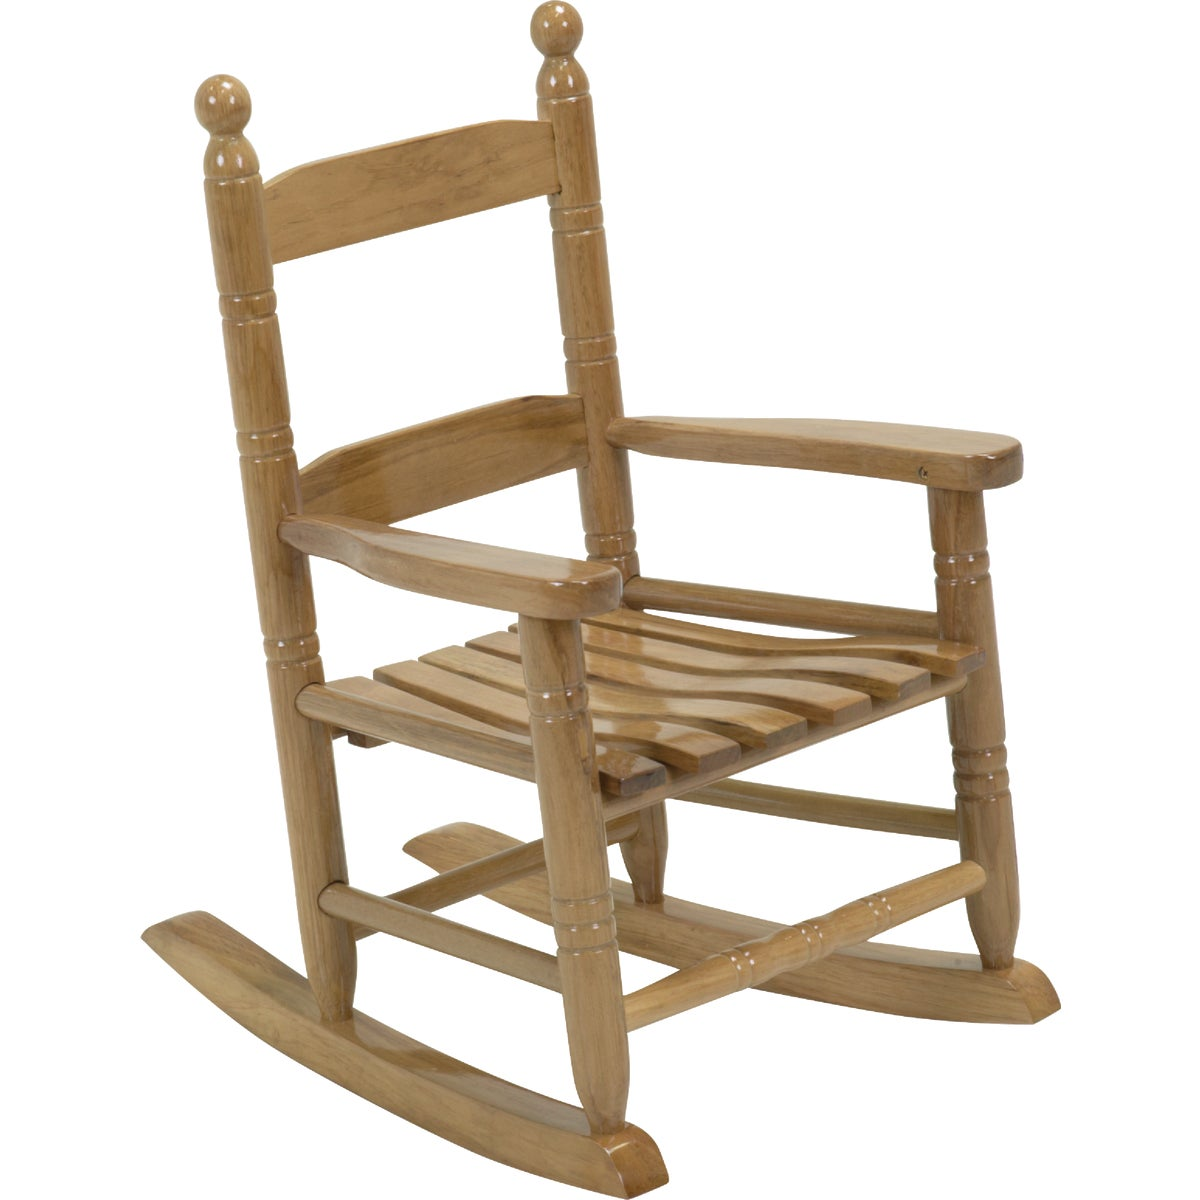 NATURAL CHILD'S ROCKER